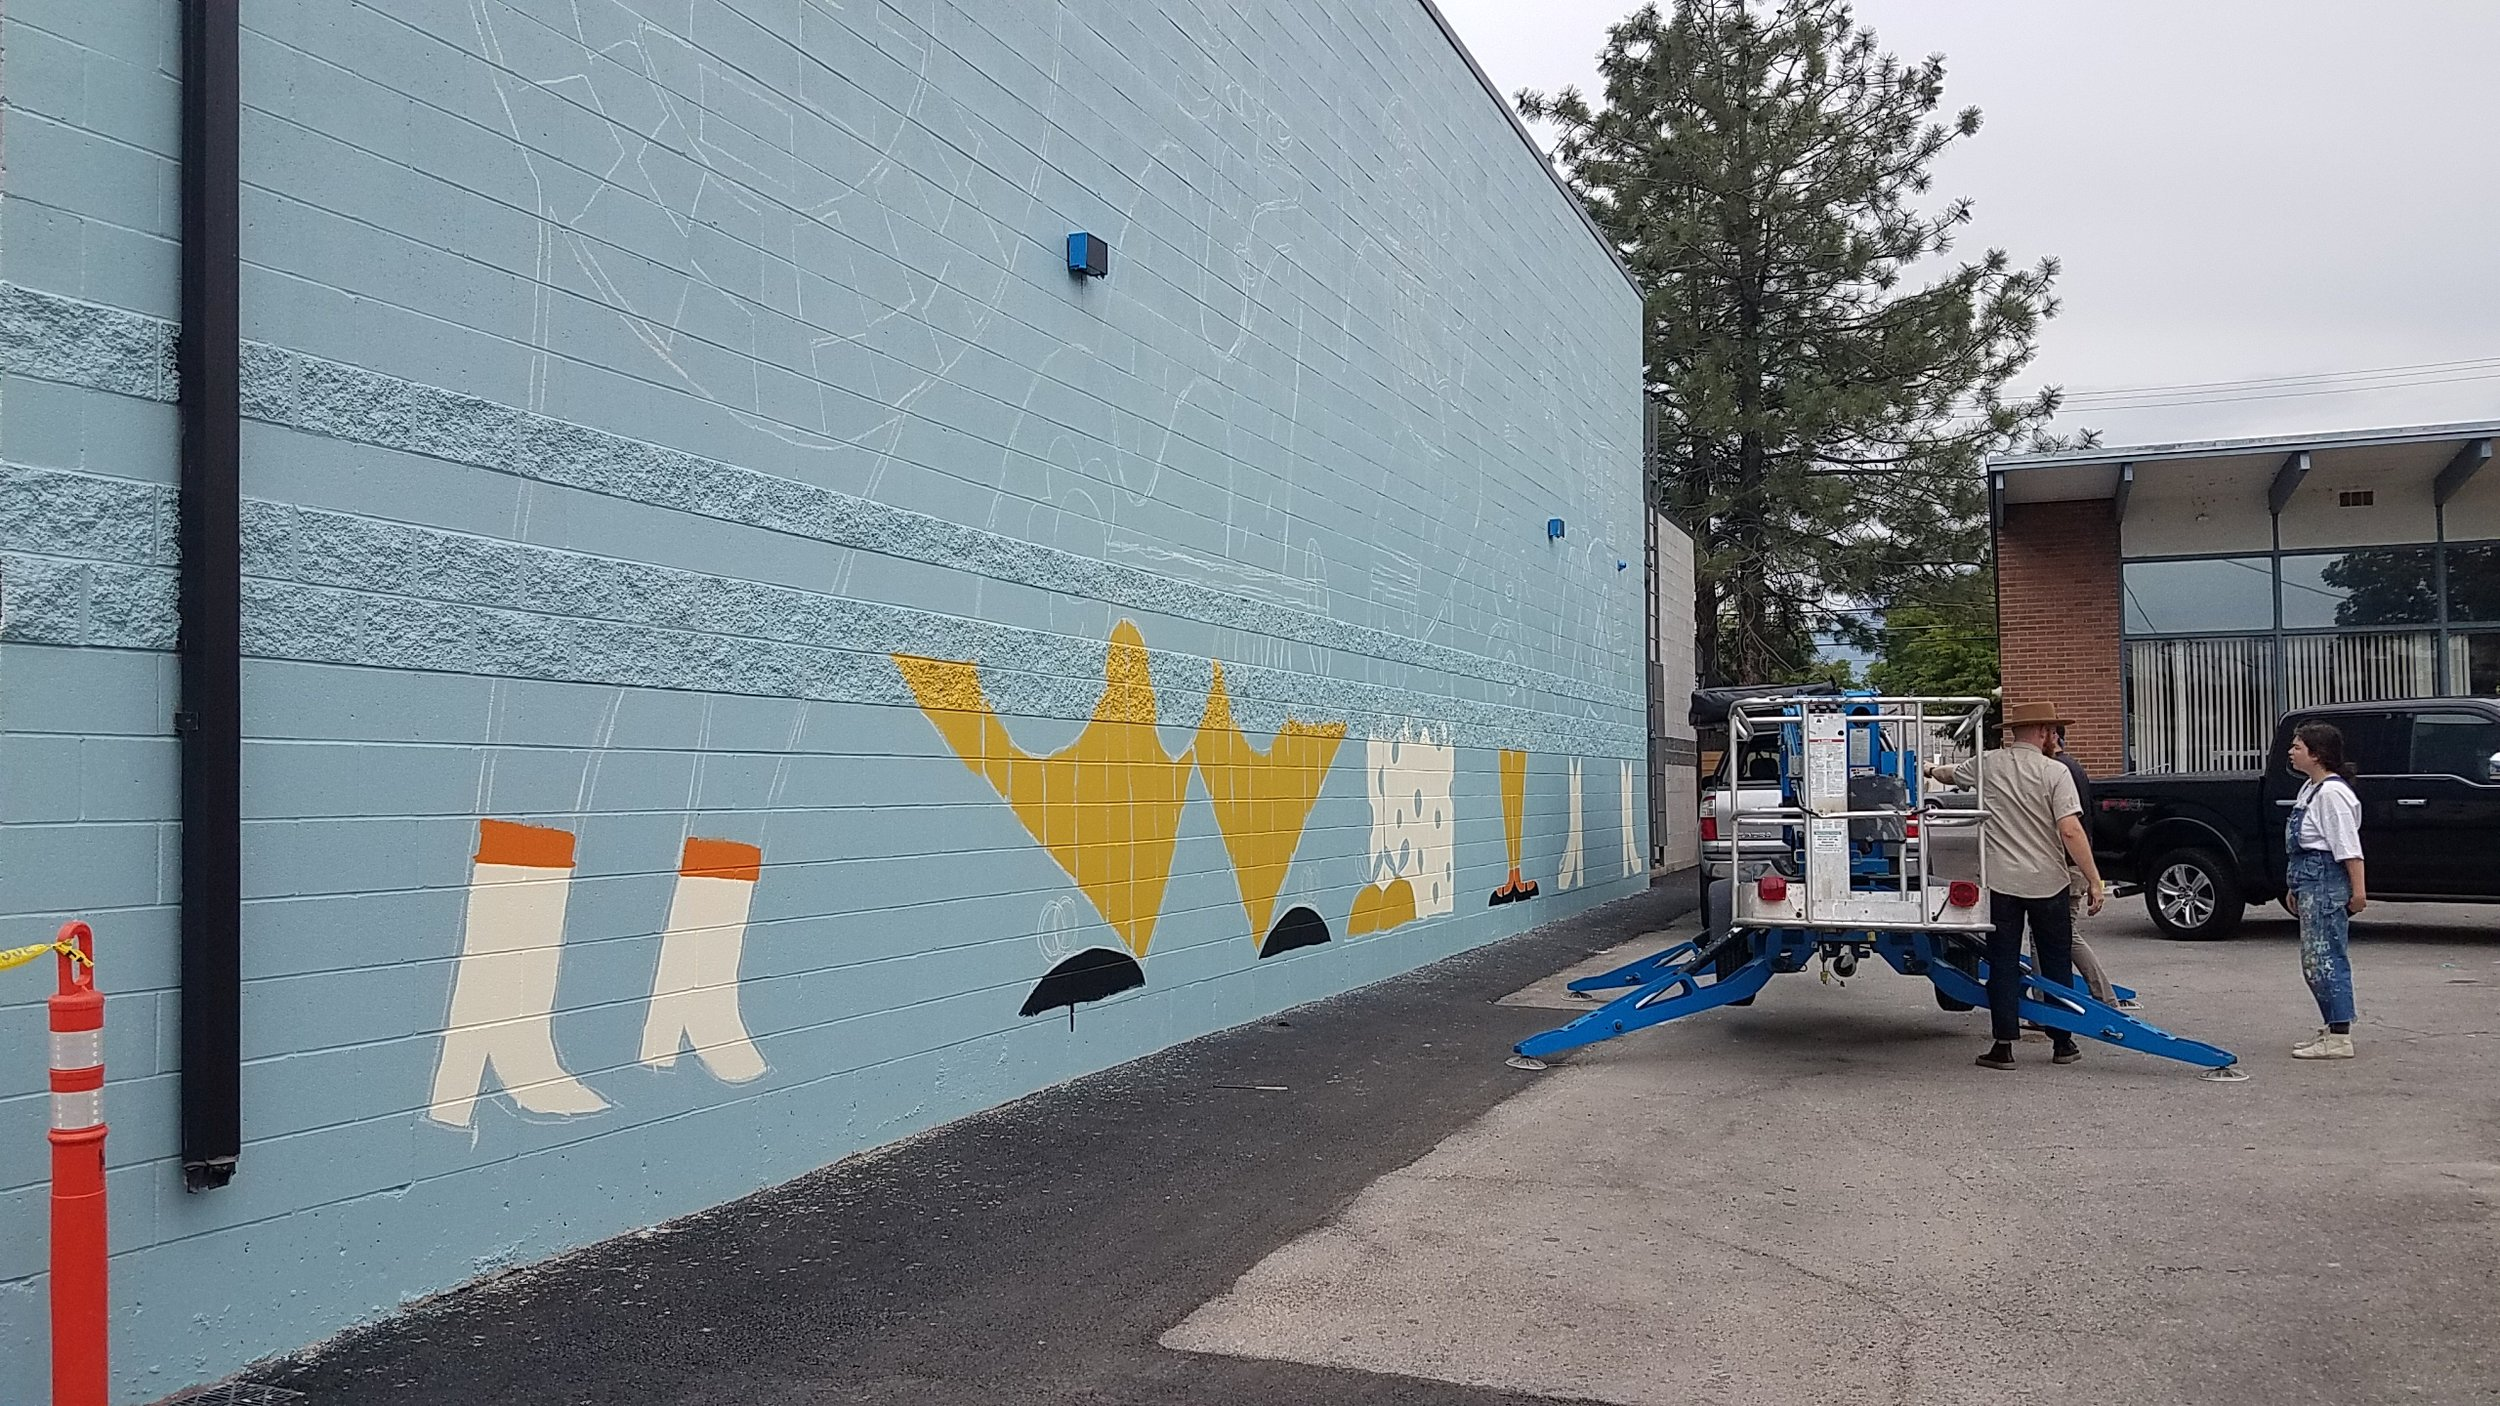 Work on the mural continues.